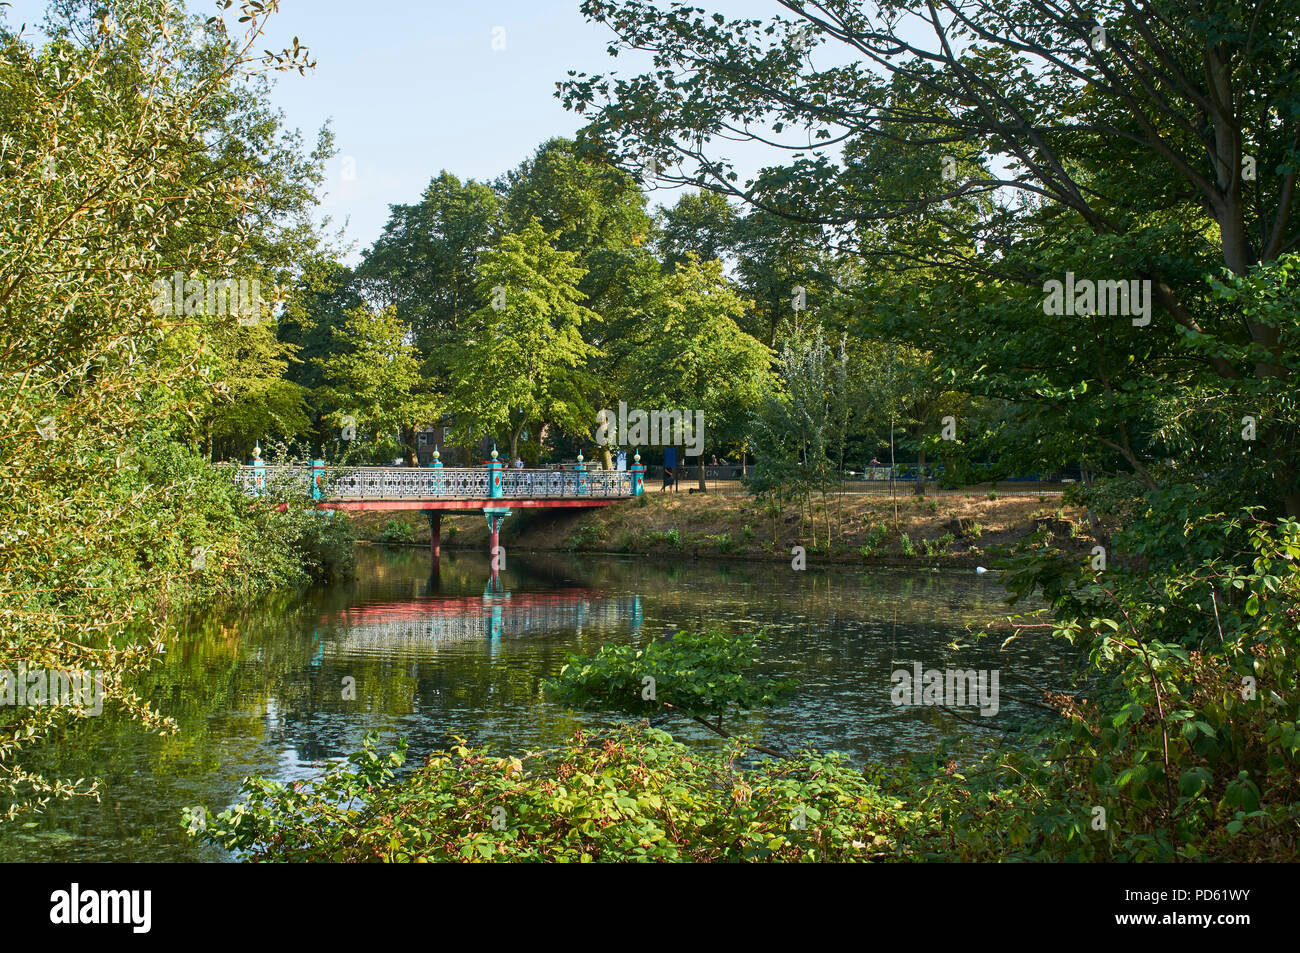 Bridge over the lake in Victoria Park, East London, UK, in early August - Stock Image